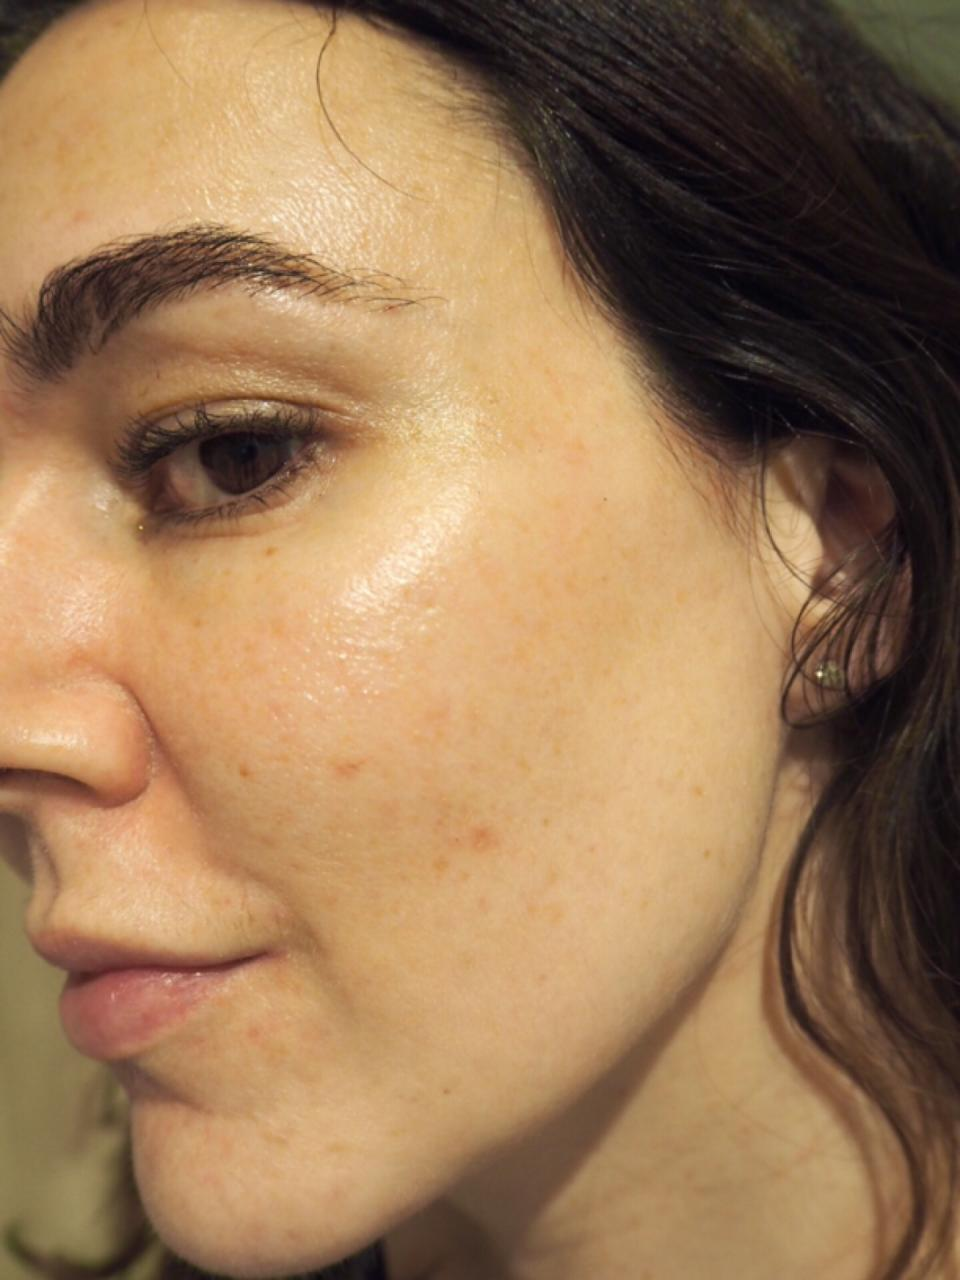 The Ordinary Skincare After 5 Weeks side face